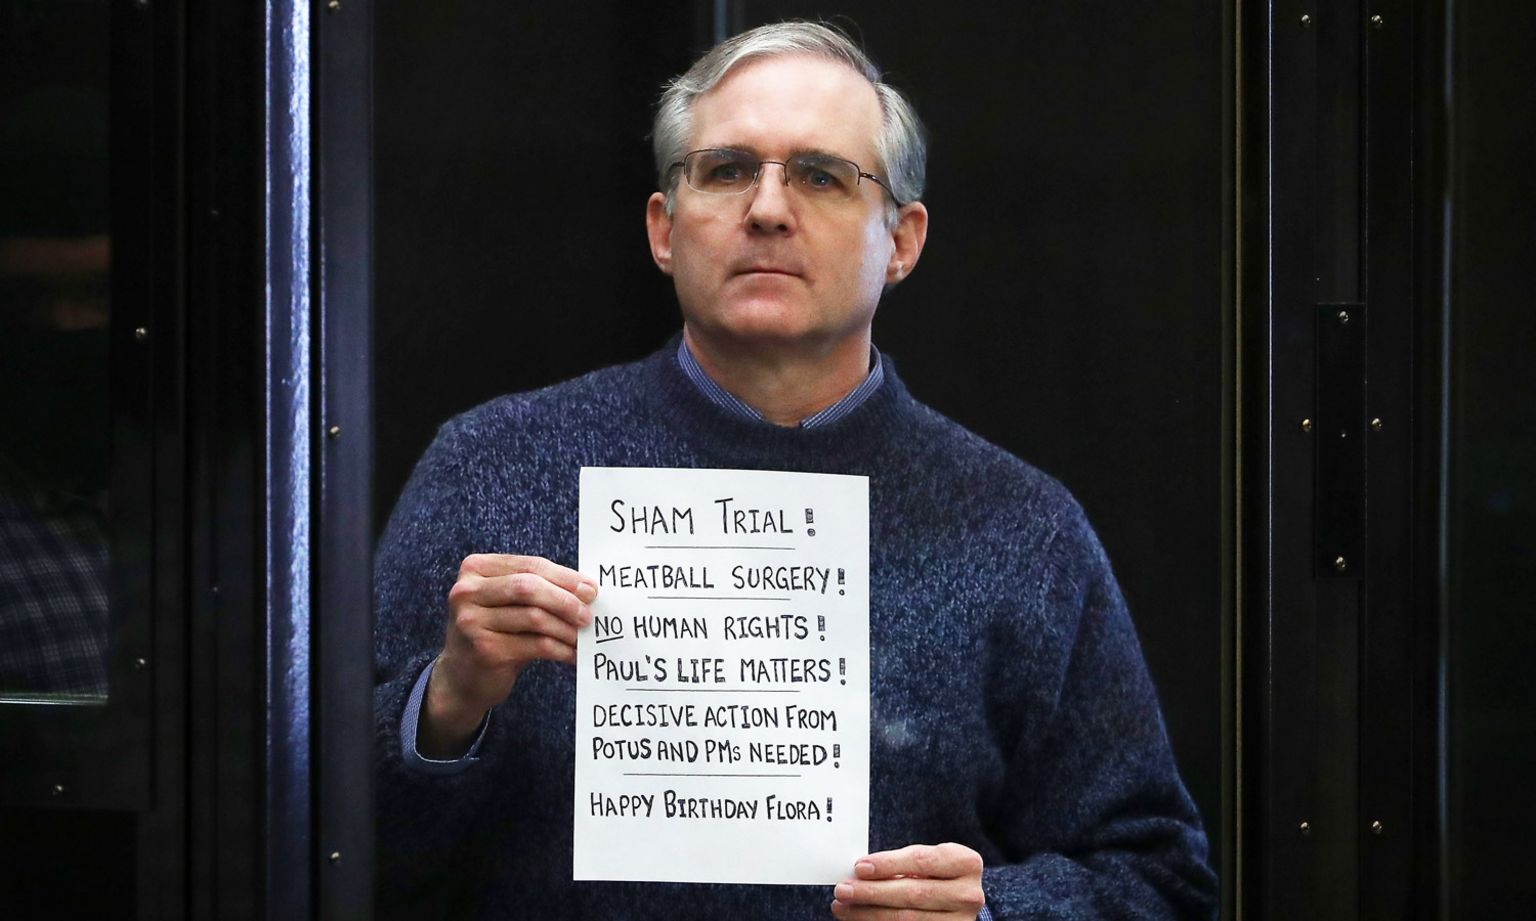 """Paul Whelan holds up a sign at the end of his trial - """"Sham trial! Meatball surgery! No human rights! Paul's life matters! Decisive action from potus and PMs needed! Happy Birthday Flora!"""""""